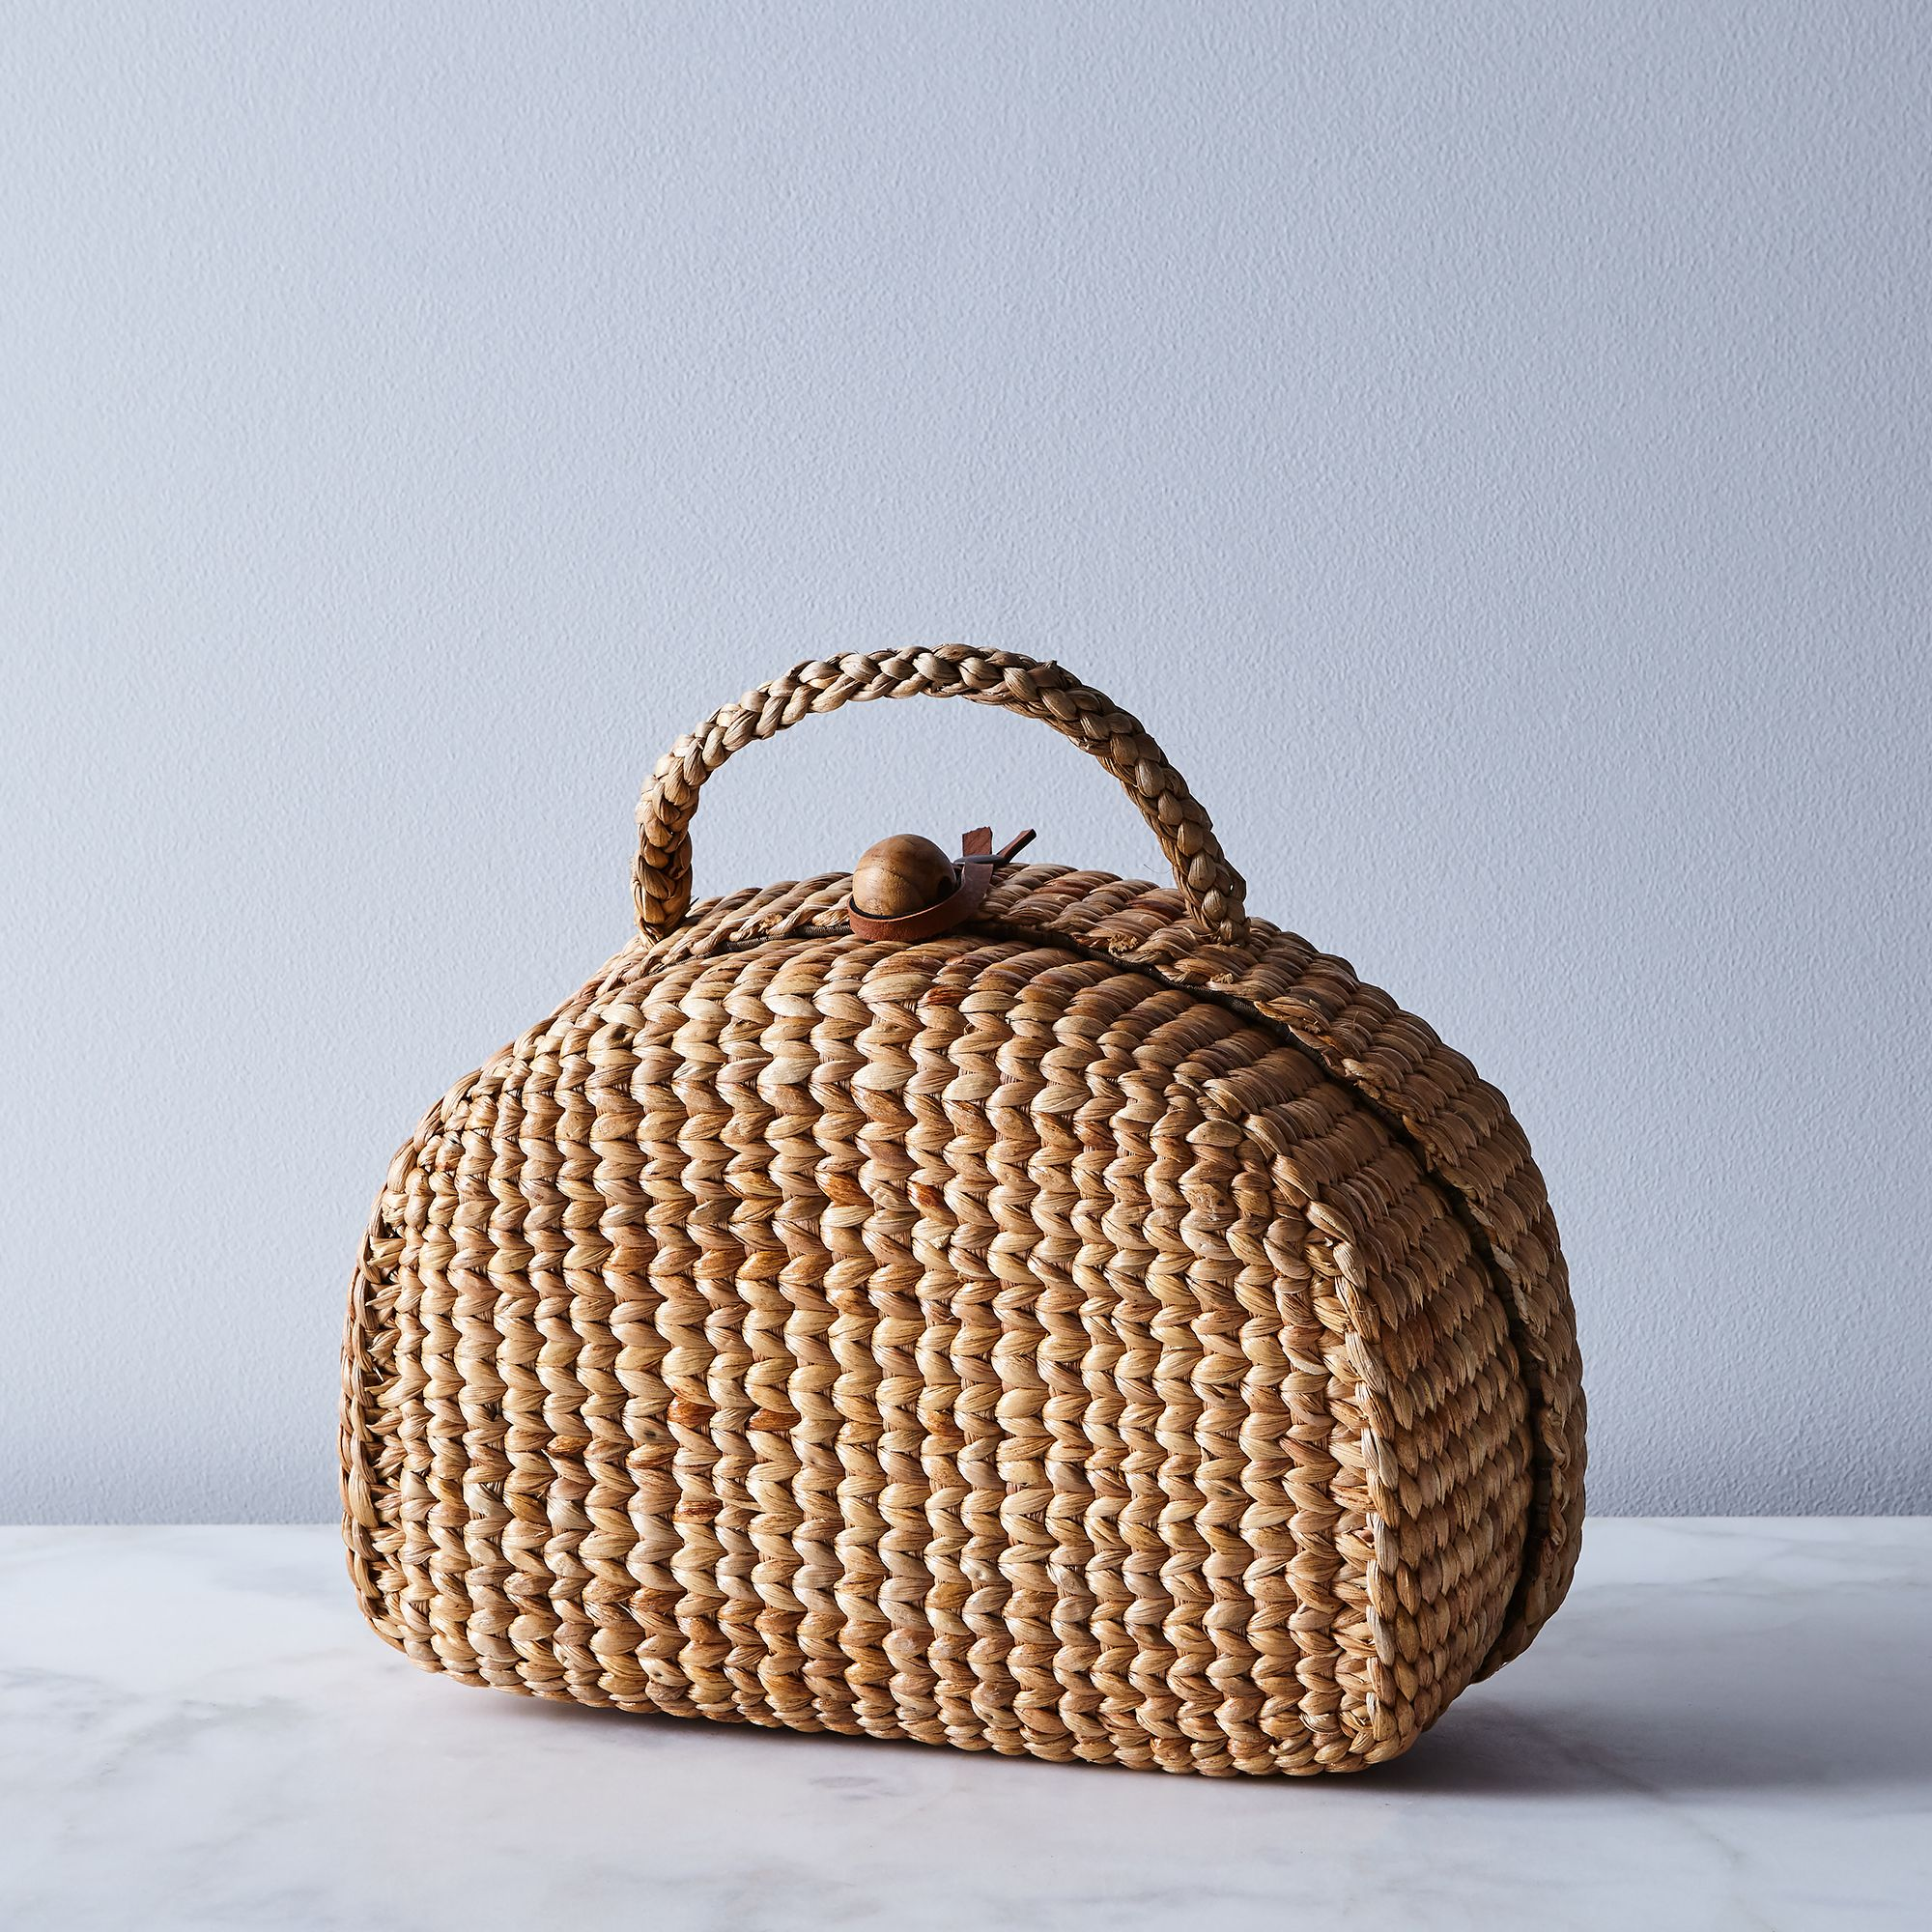 27e25073 4f0a 4379 96f0 e2be74ba6947  2017 1114 see and grass handwoven picnic tote small silo rocky luten 007